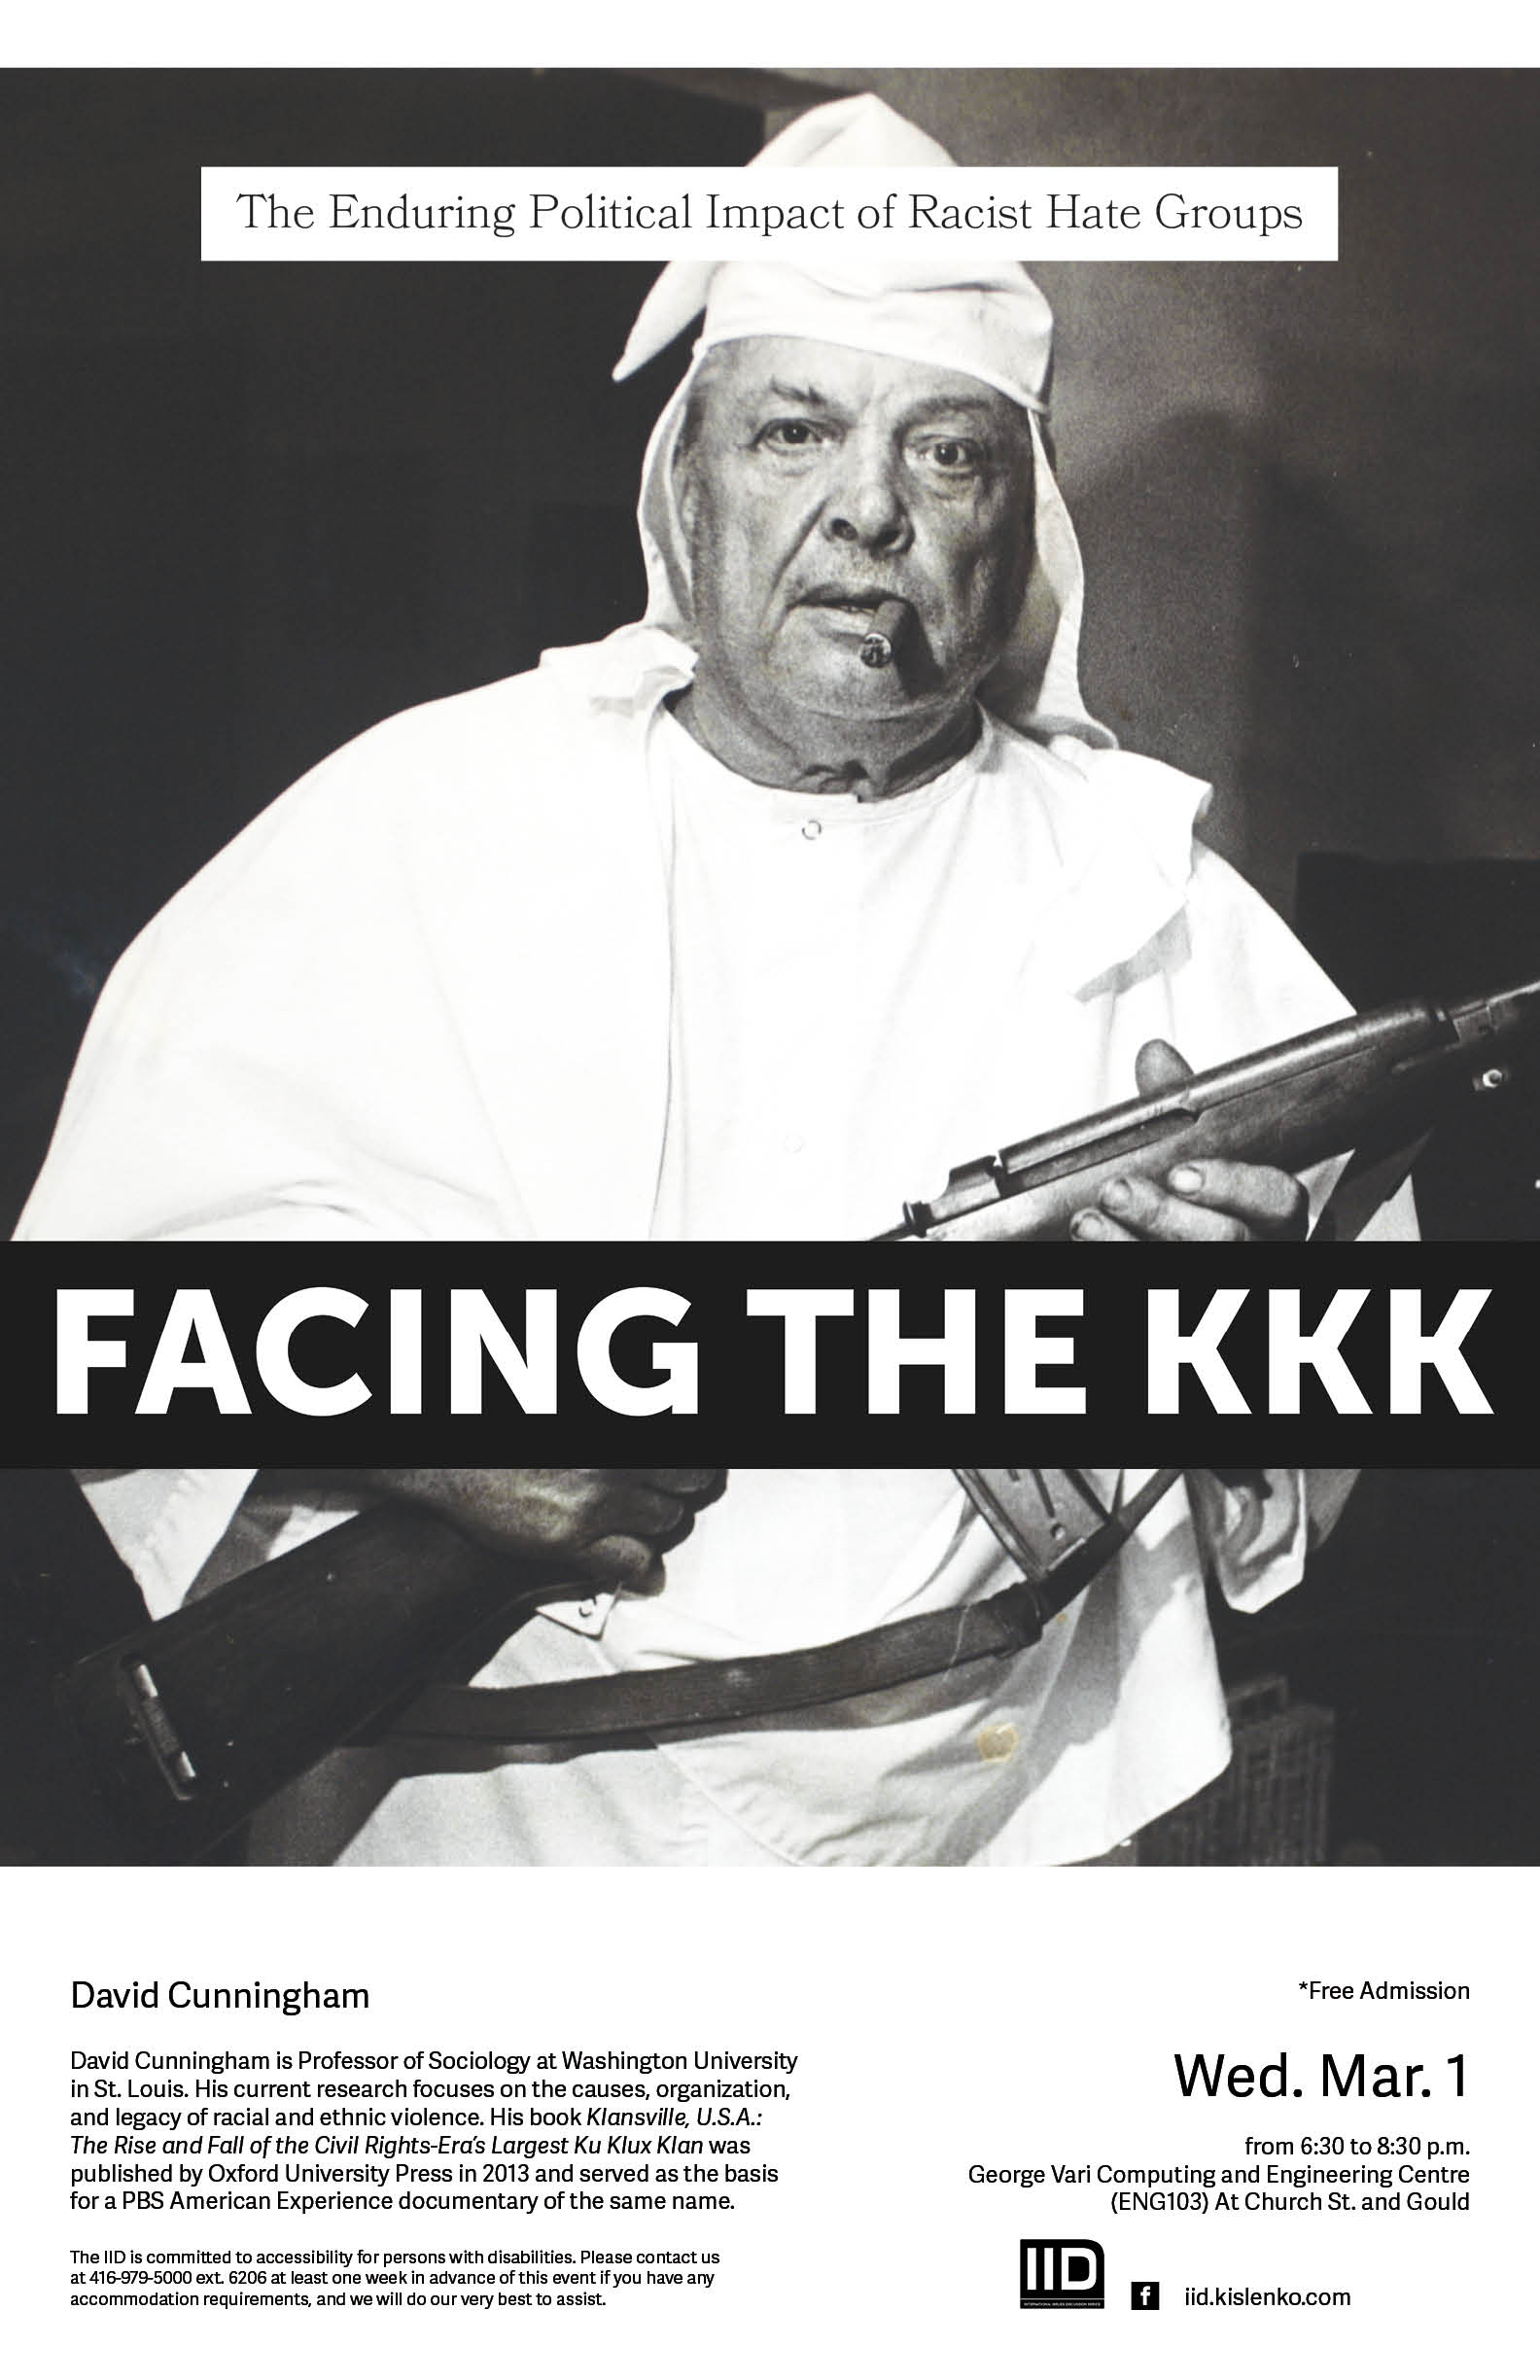 Facing the KKK: The Enduring Political Impact of Racist Hate Groups – Wednesday, March 1st, 2017